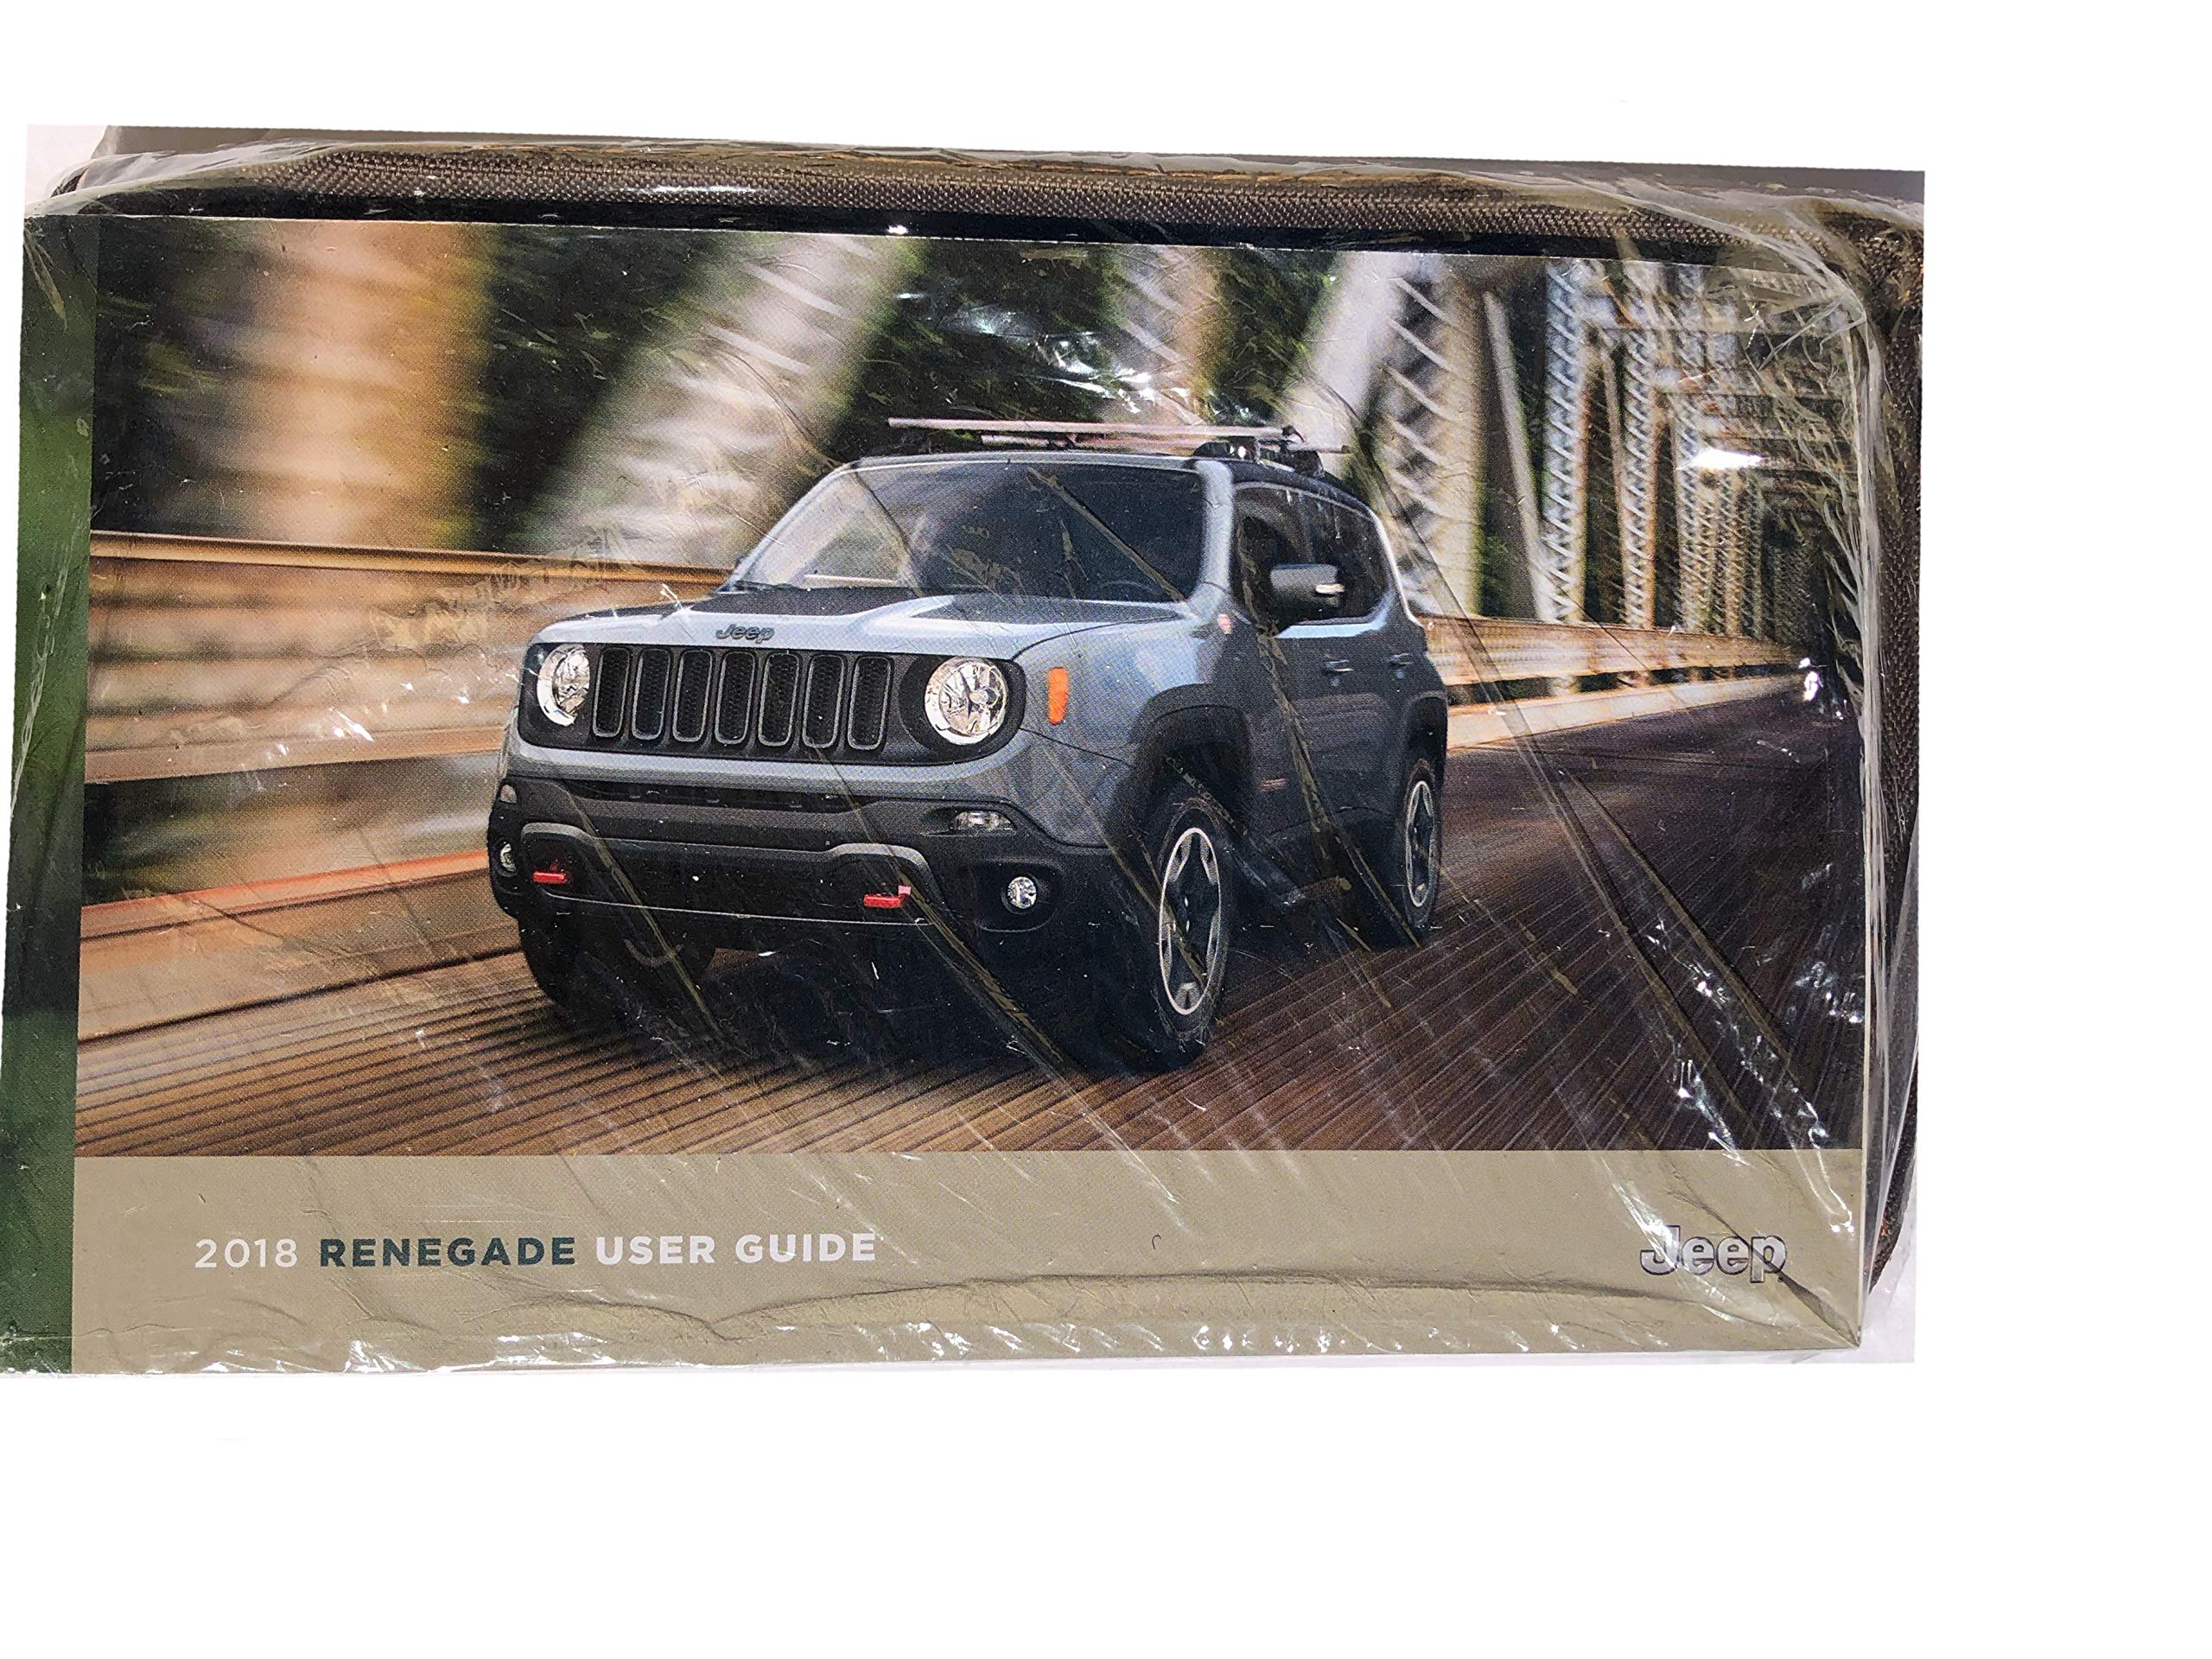 2018 Jeep Renegade Owners Manual